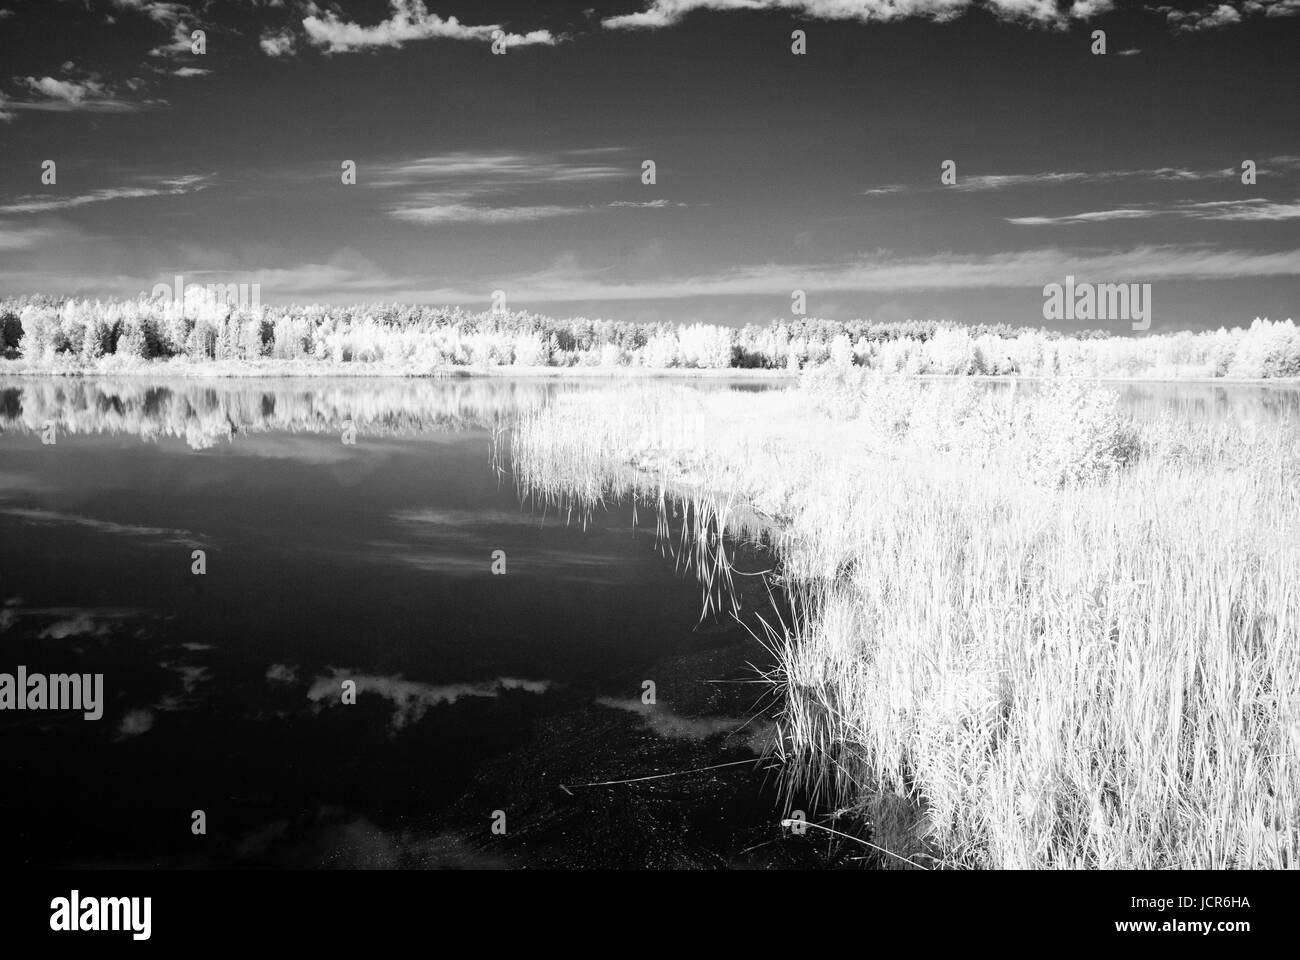 forest lake in hot summer day in countryside. infrared image - Stock Image